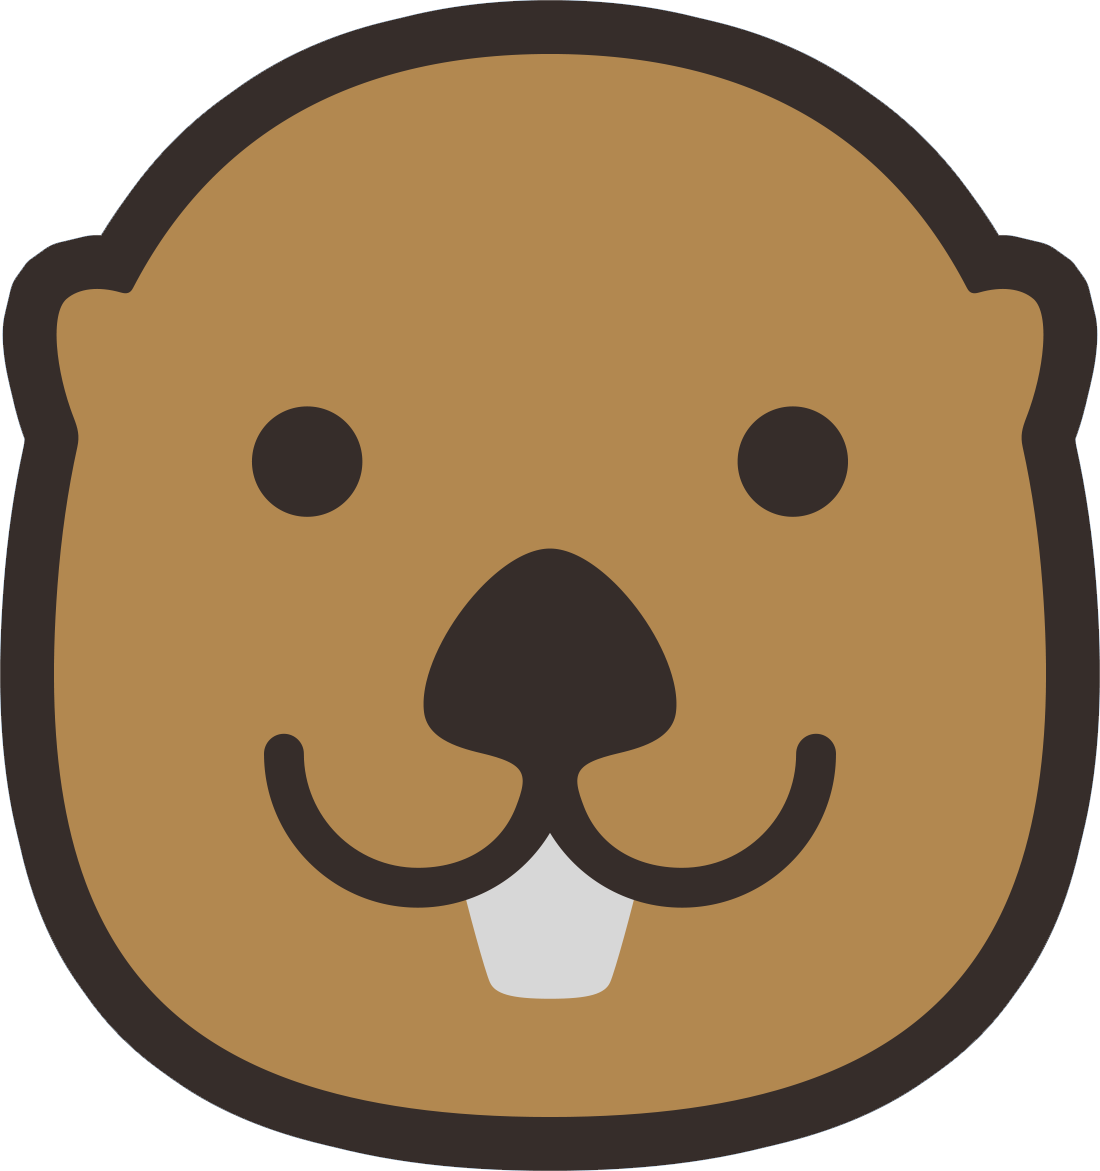 graphic royalty free download Otter clipart face